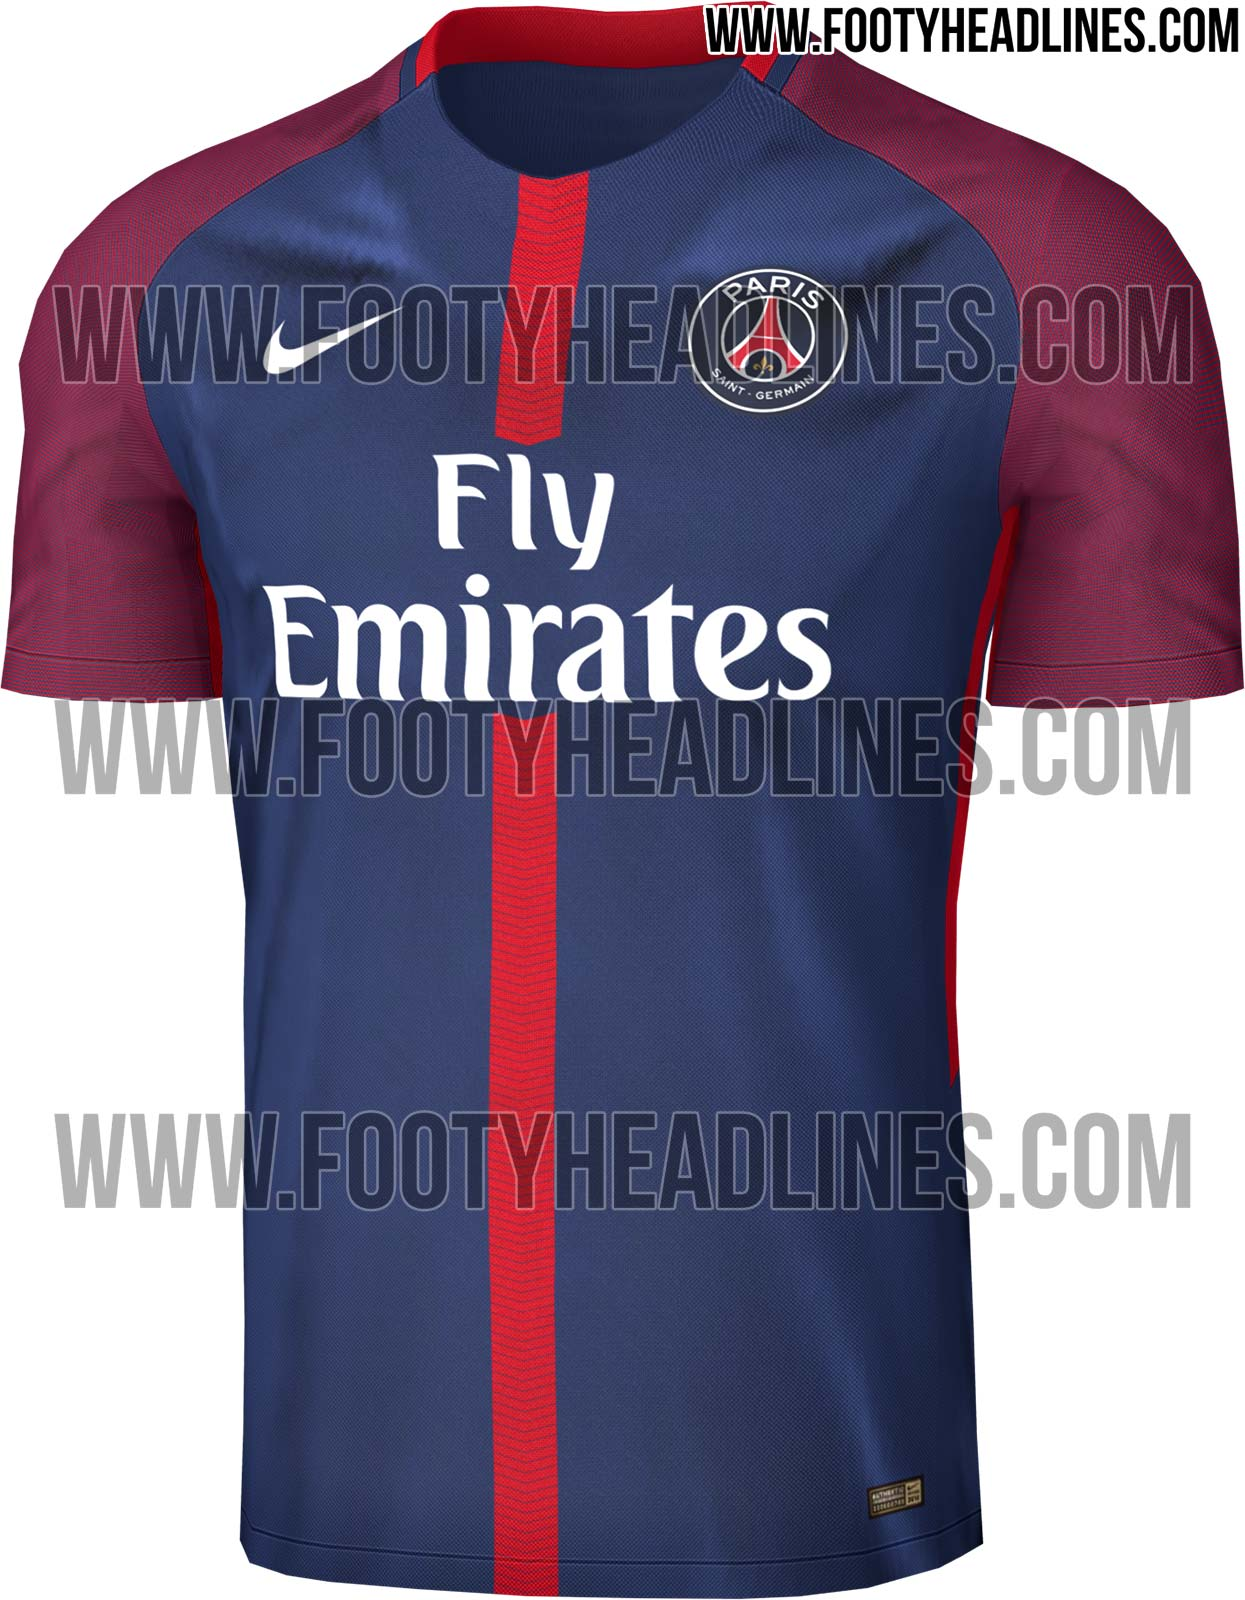 info cs ce ne sera pas le maillot 2017 2018 du psg psg canal supporters. Black Bedroom Furniture Sets. Home Design Ideas